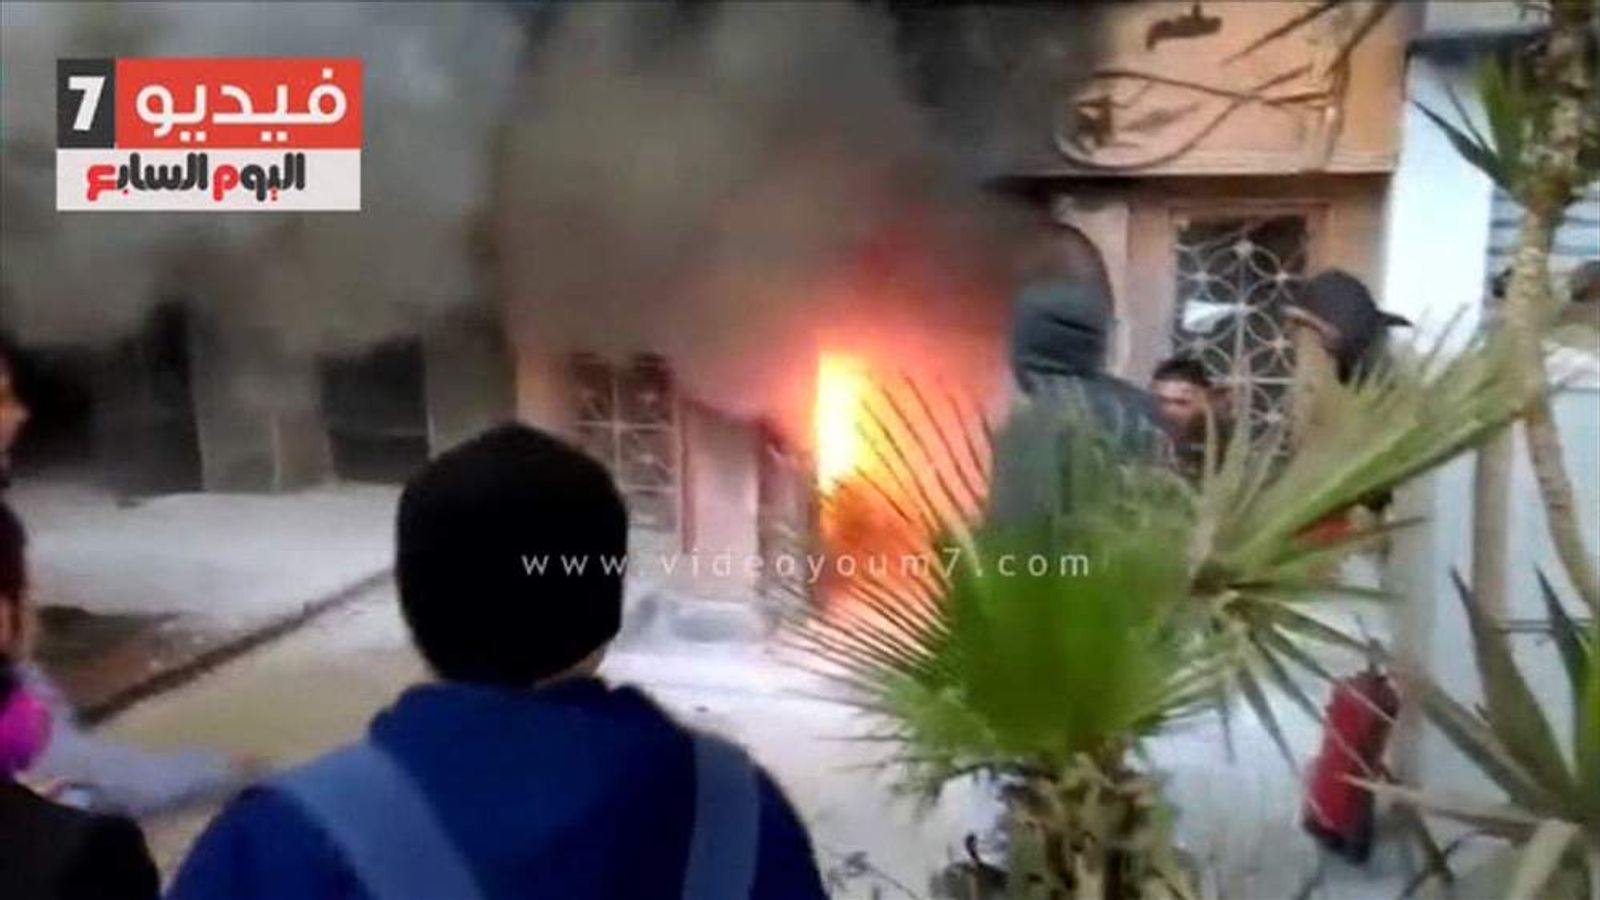 Smoke pours out of a restaurant in Cairo after it was firebombed.